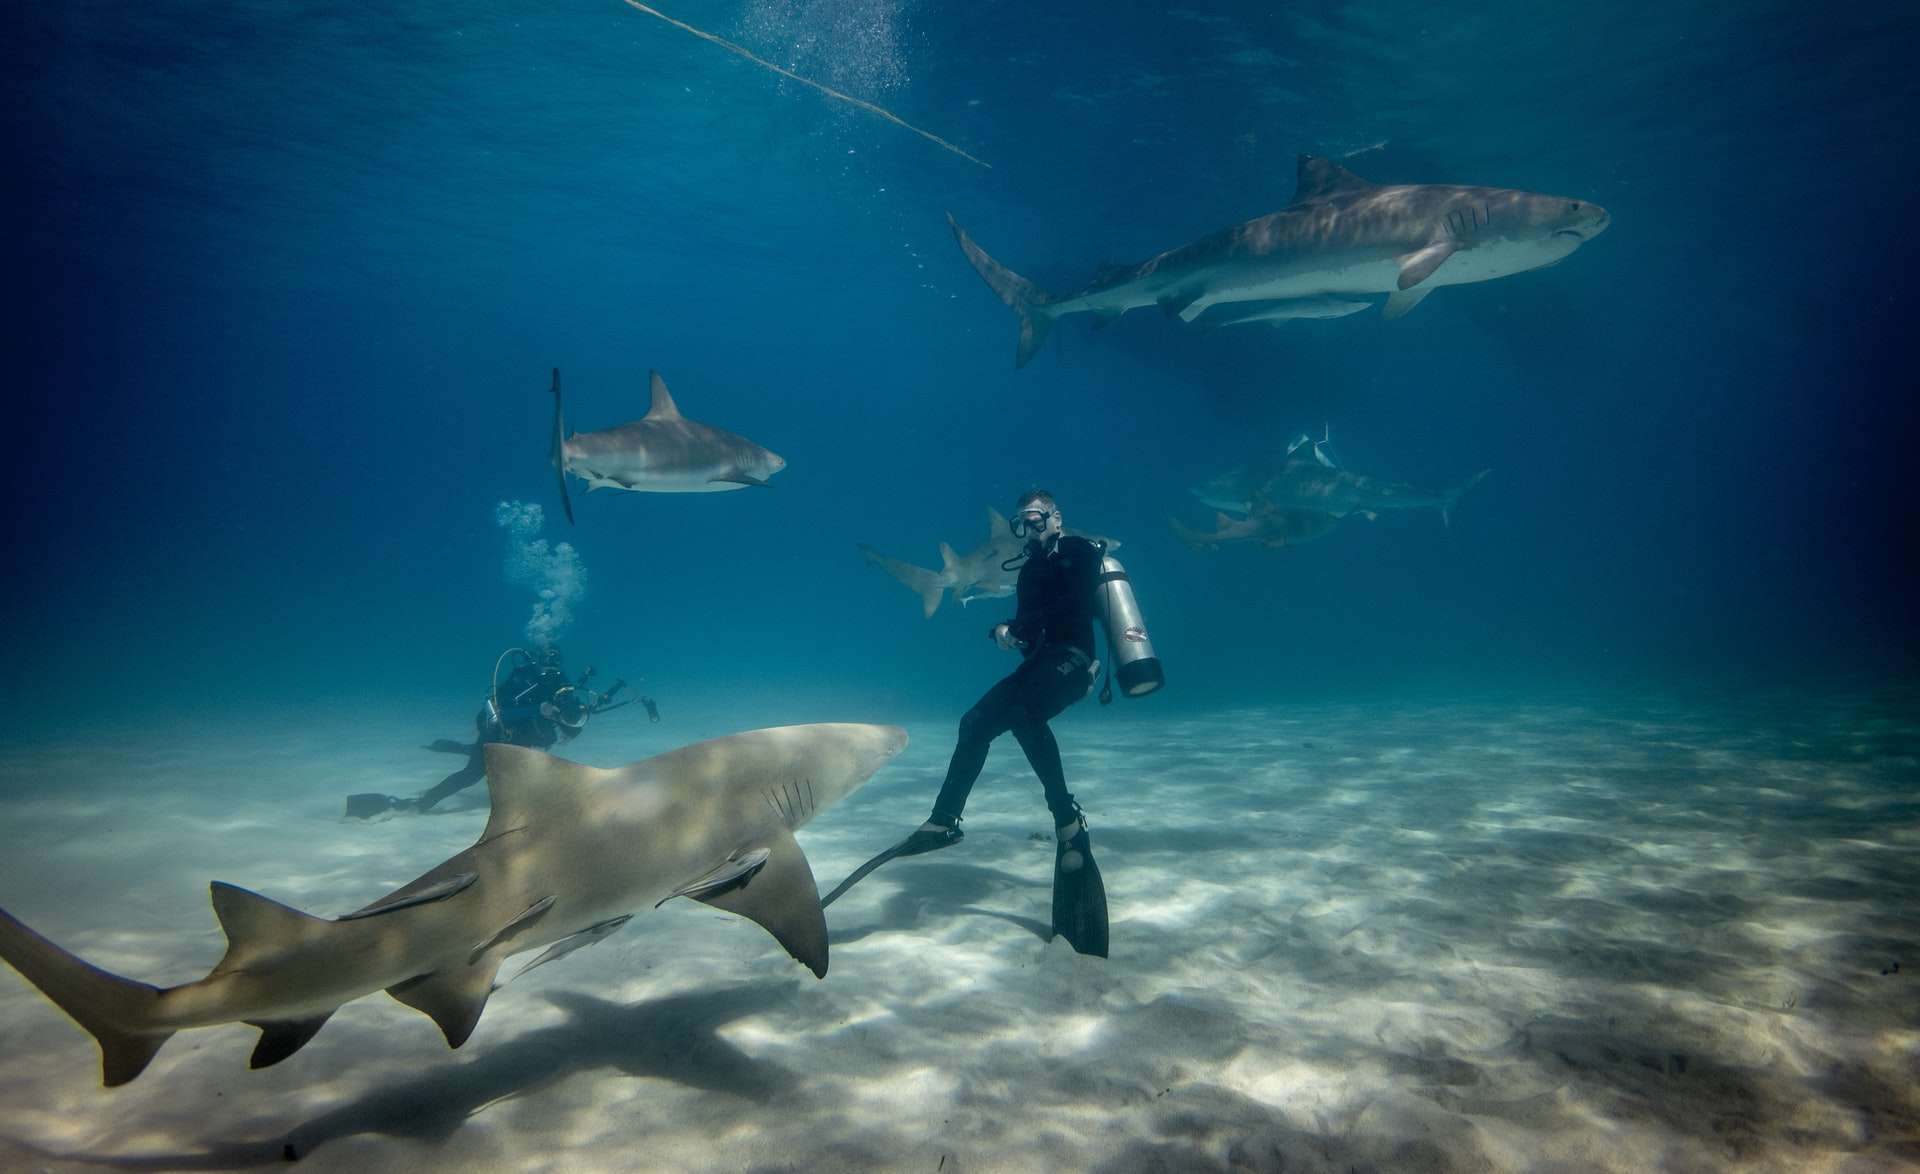 Are Sharks Scared of Scuba Divers